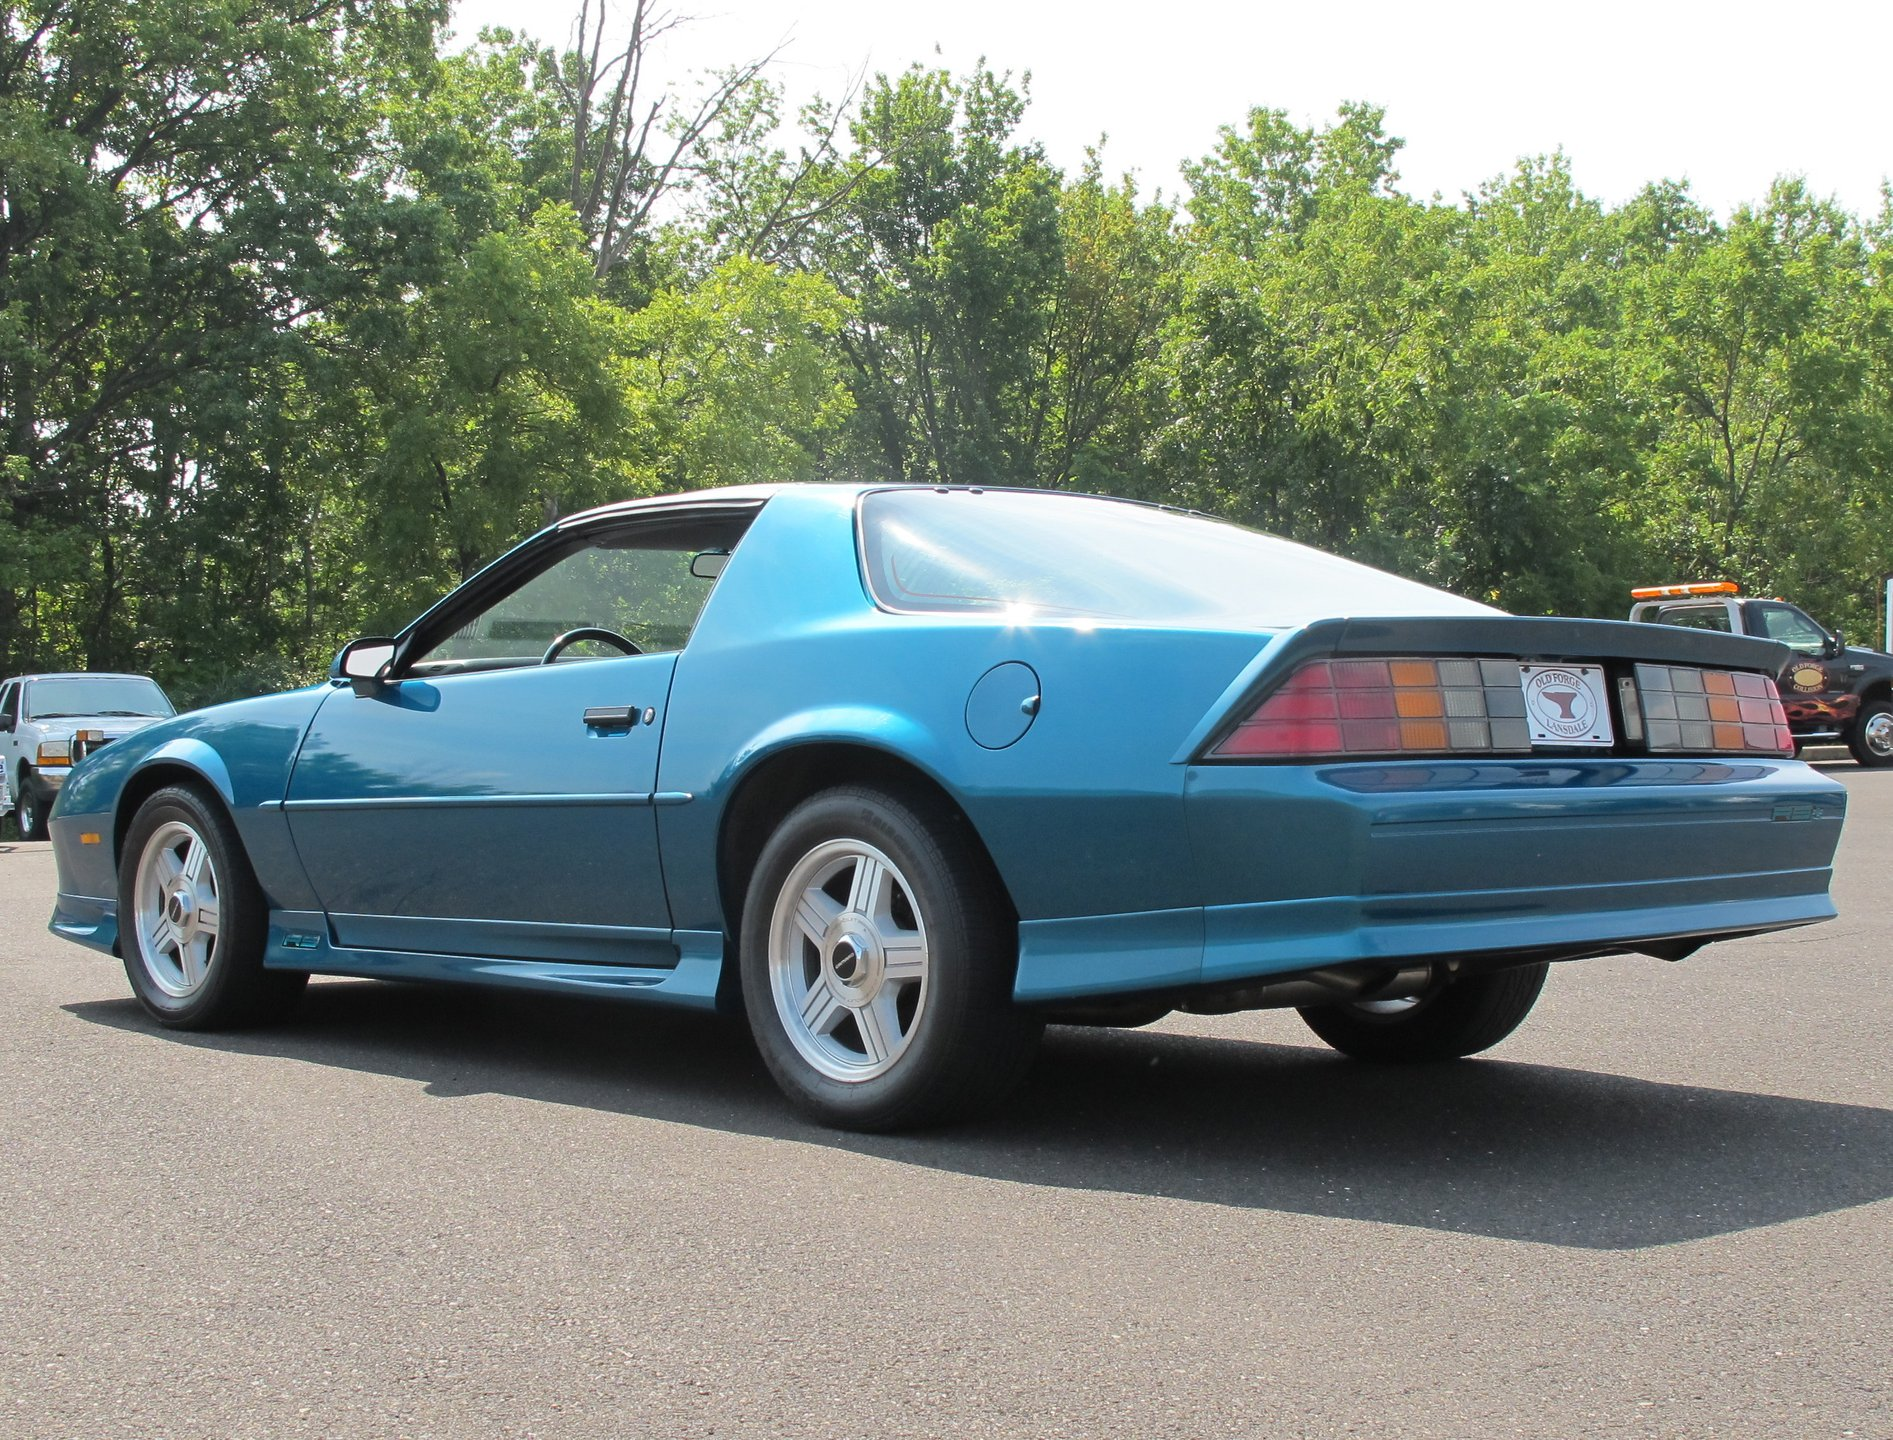 1992 Chevrolet Camaro RS | OLD FORGE MOTORCARS INC